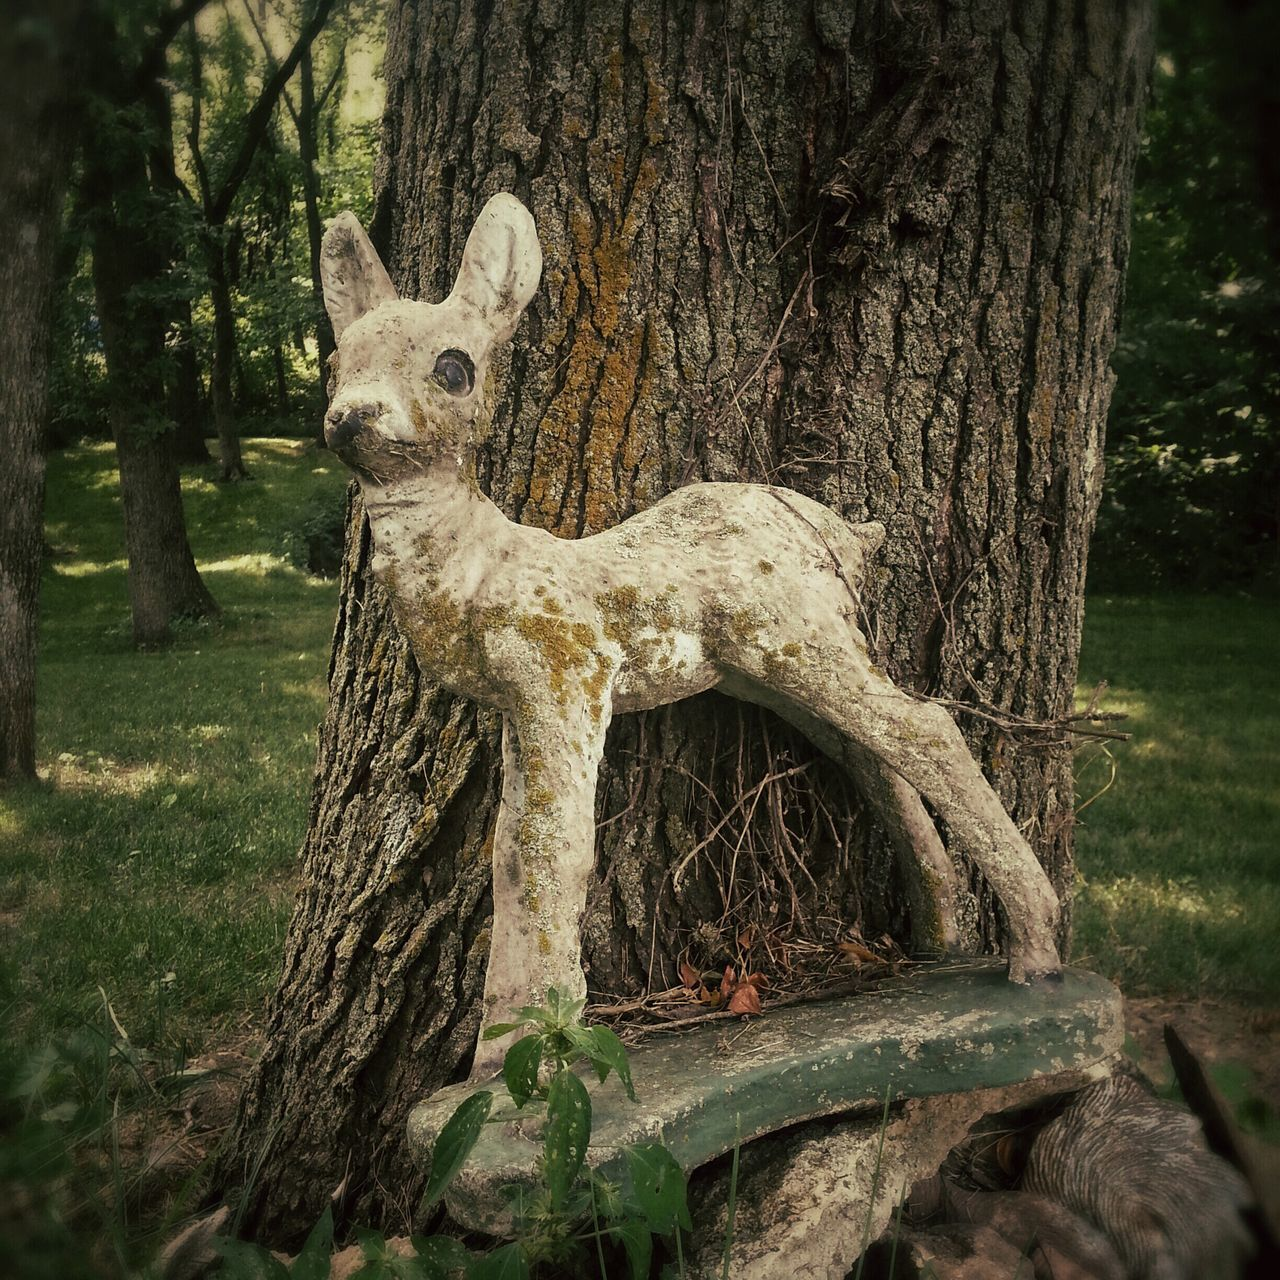 Abandoned Deer Figurine Leaning On Tree Trunk In Forest